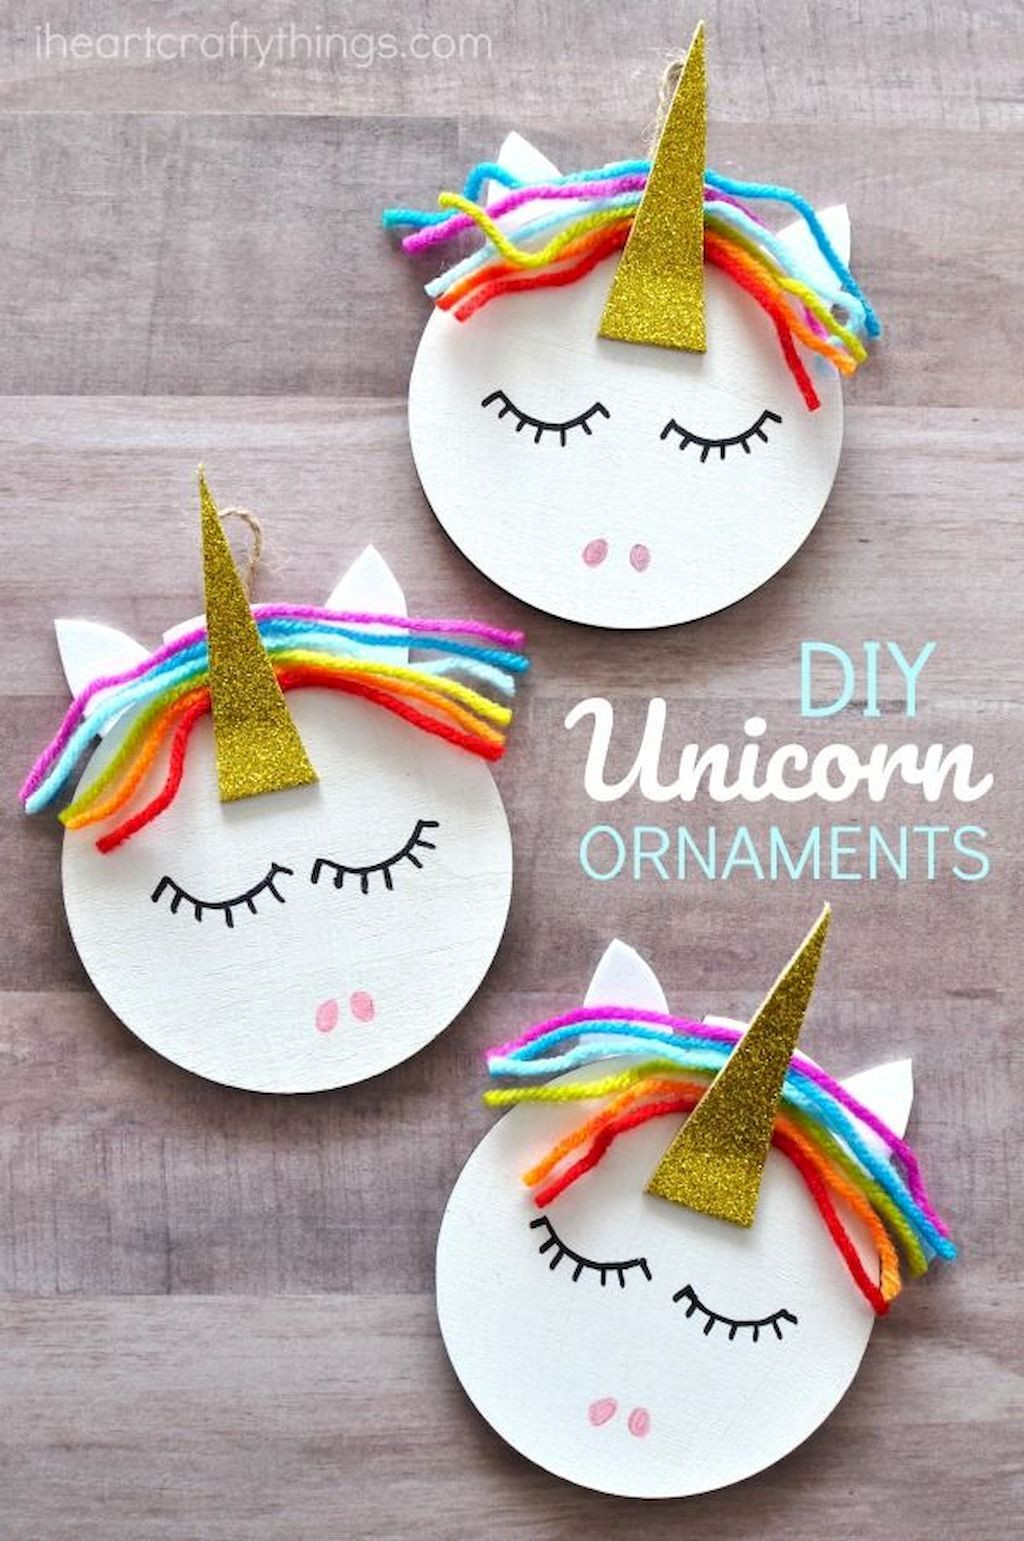 Best ideas about Easy DIY Crafts For Kids . Save or Pin 20 Cheap and Easy DIY Crafts Ideas For Kids Now.